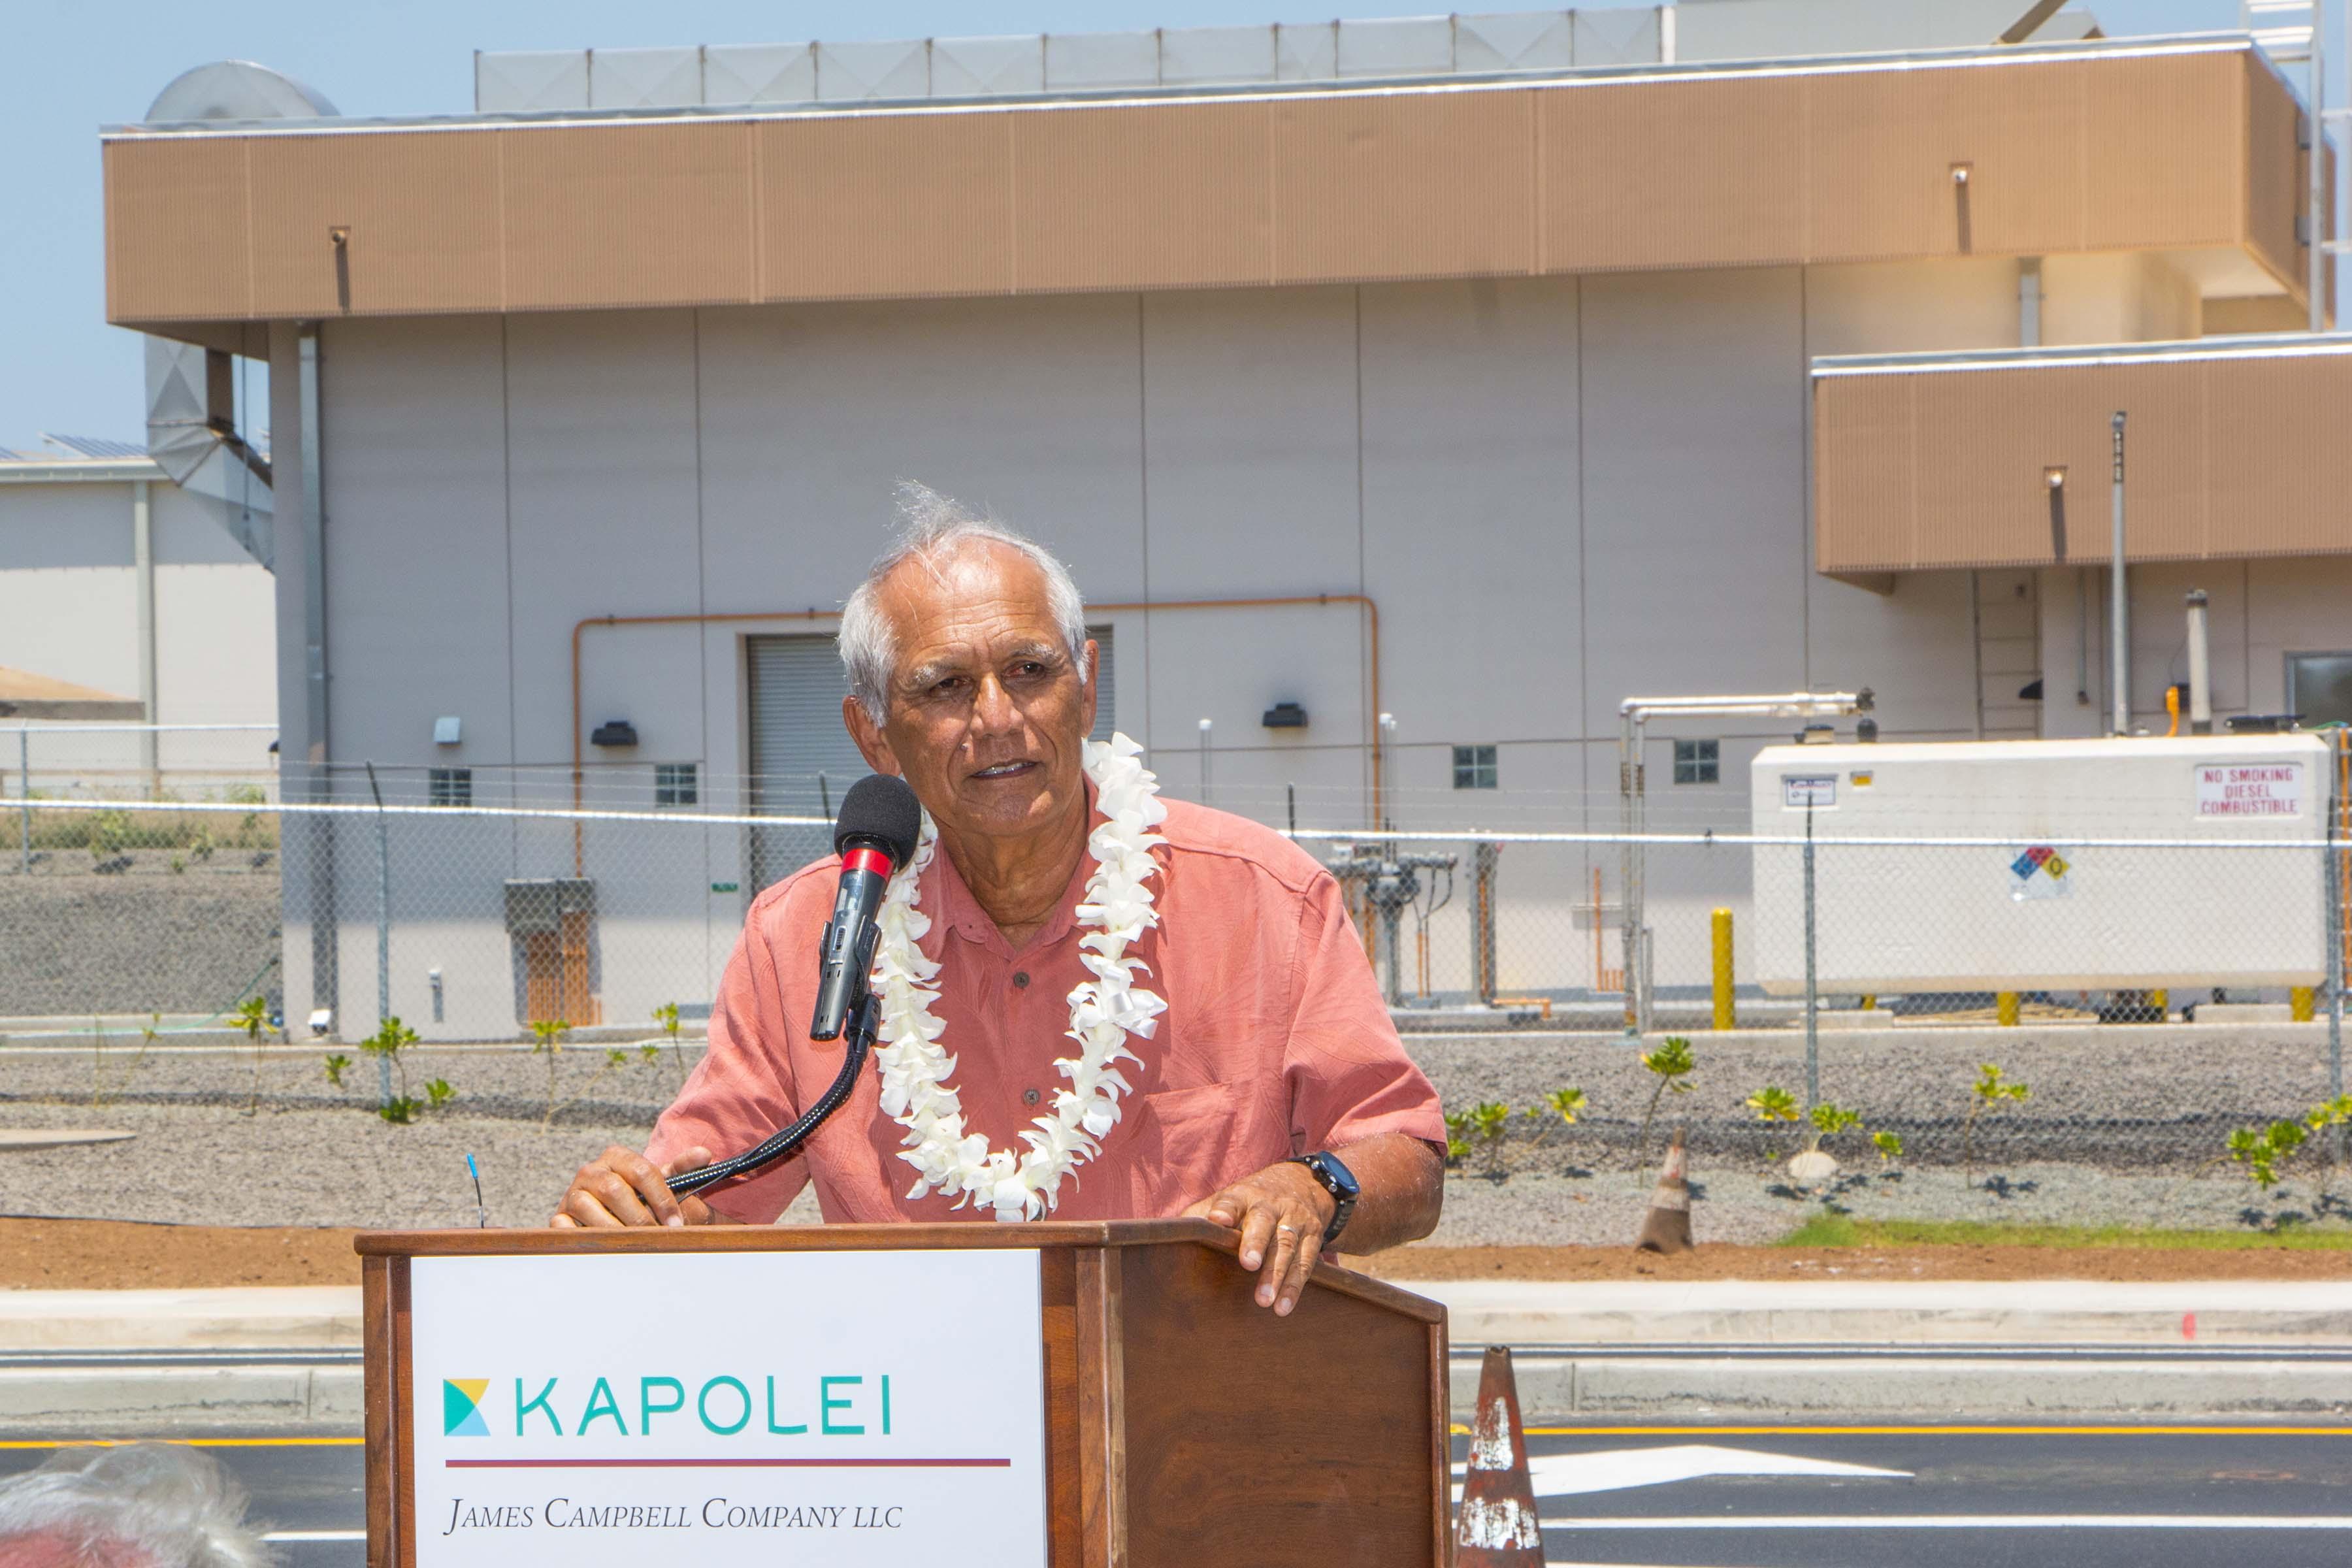 I spoke at the completion celebration of the Kapolei Boulevard Improvement Project in Kapolei on June 20. The Kapolei Properties Division of the James ...